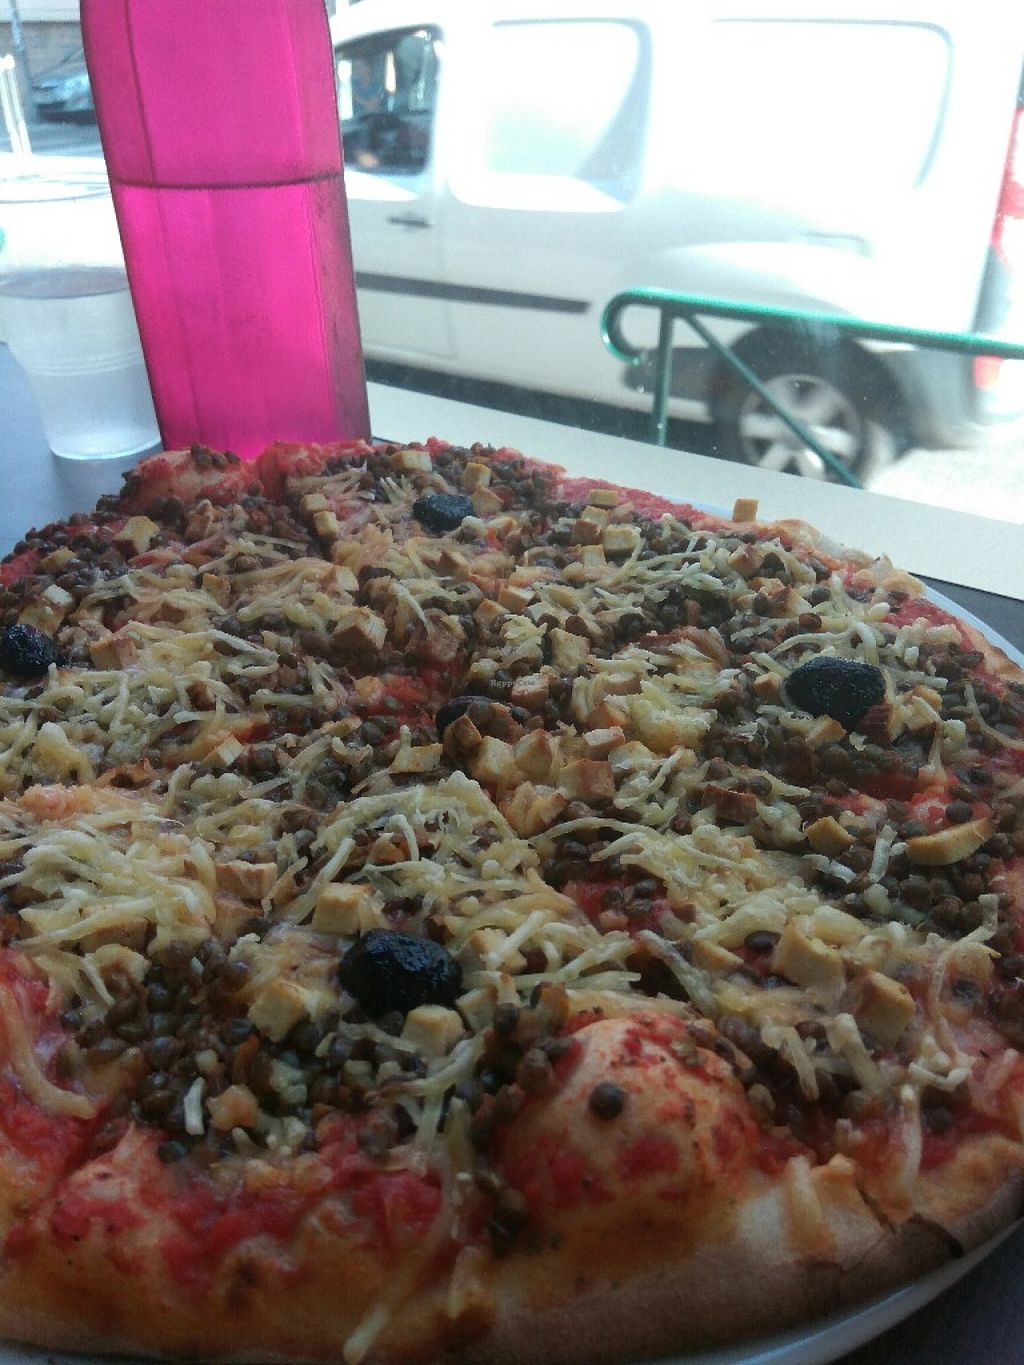 """Photo of CLOSED: Color Vegan  by <a href=""""/members/profile/Miggi"""">Miggi</a> <br/>Vegan pizza with green lentils, smoked tofu <br/> June 30, 2016  - <a href='/contact/abuse/image/63020/157032'>Report</a>"""